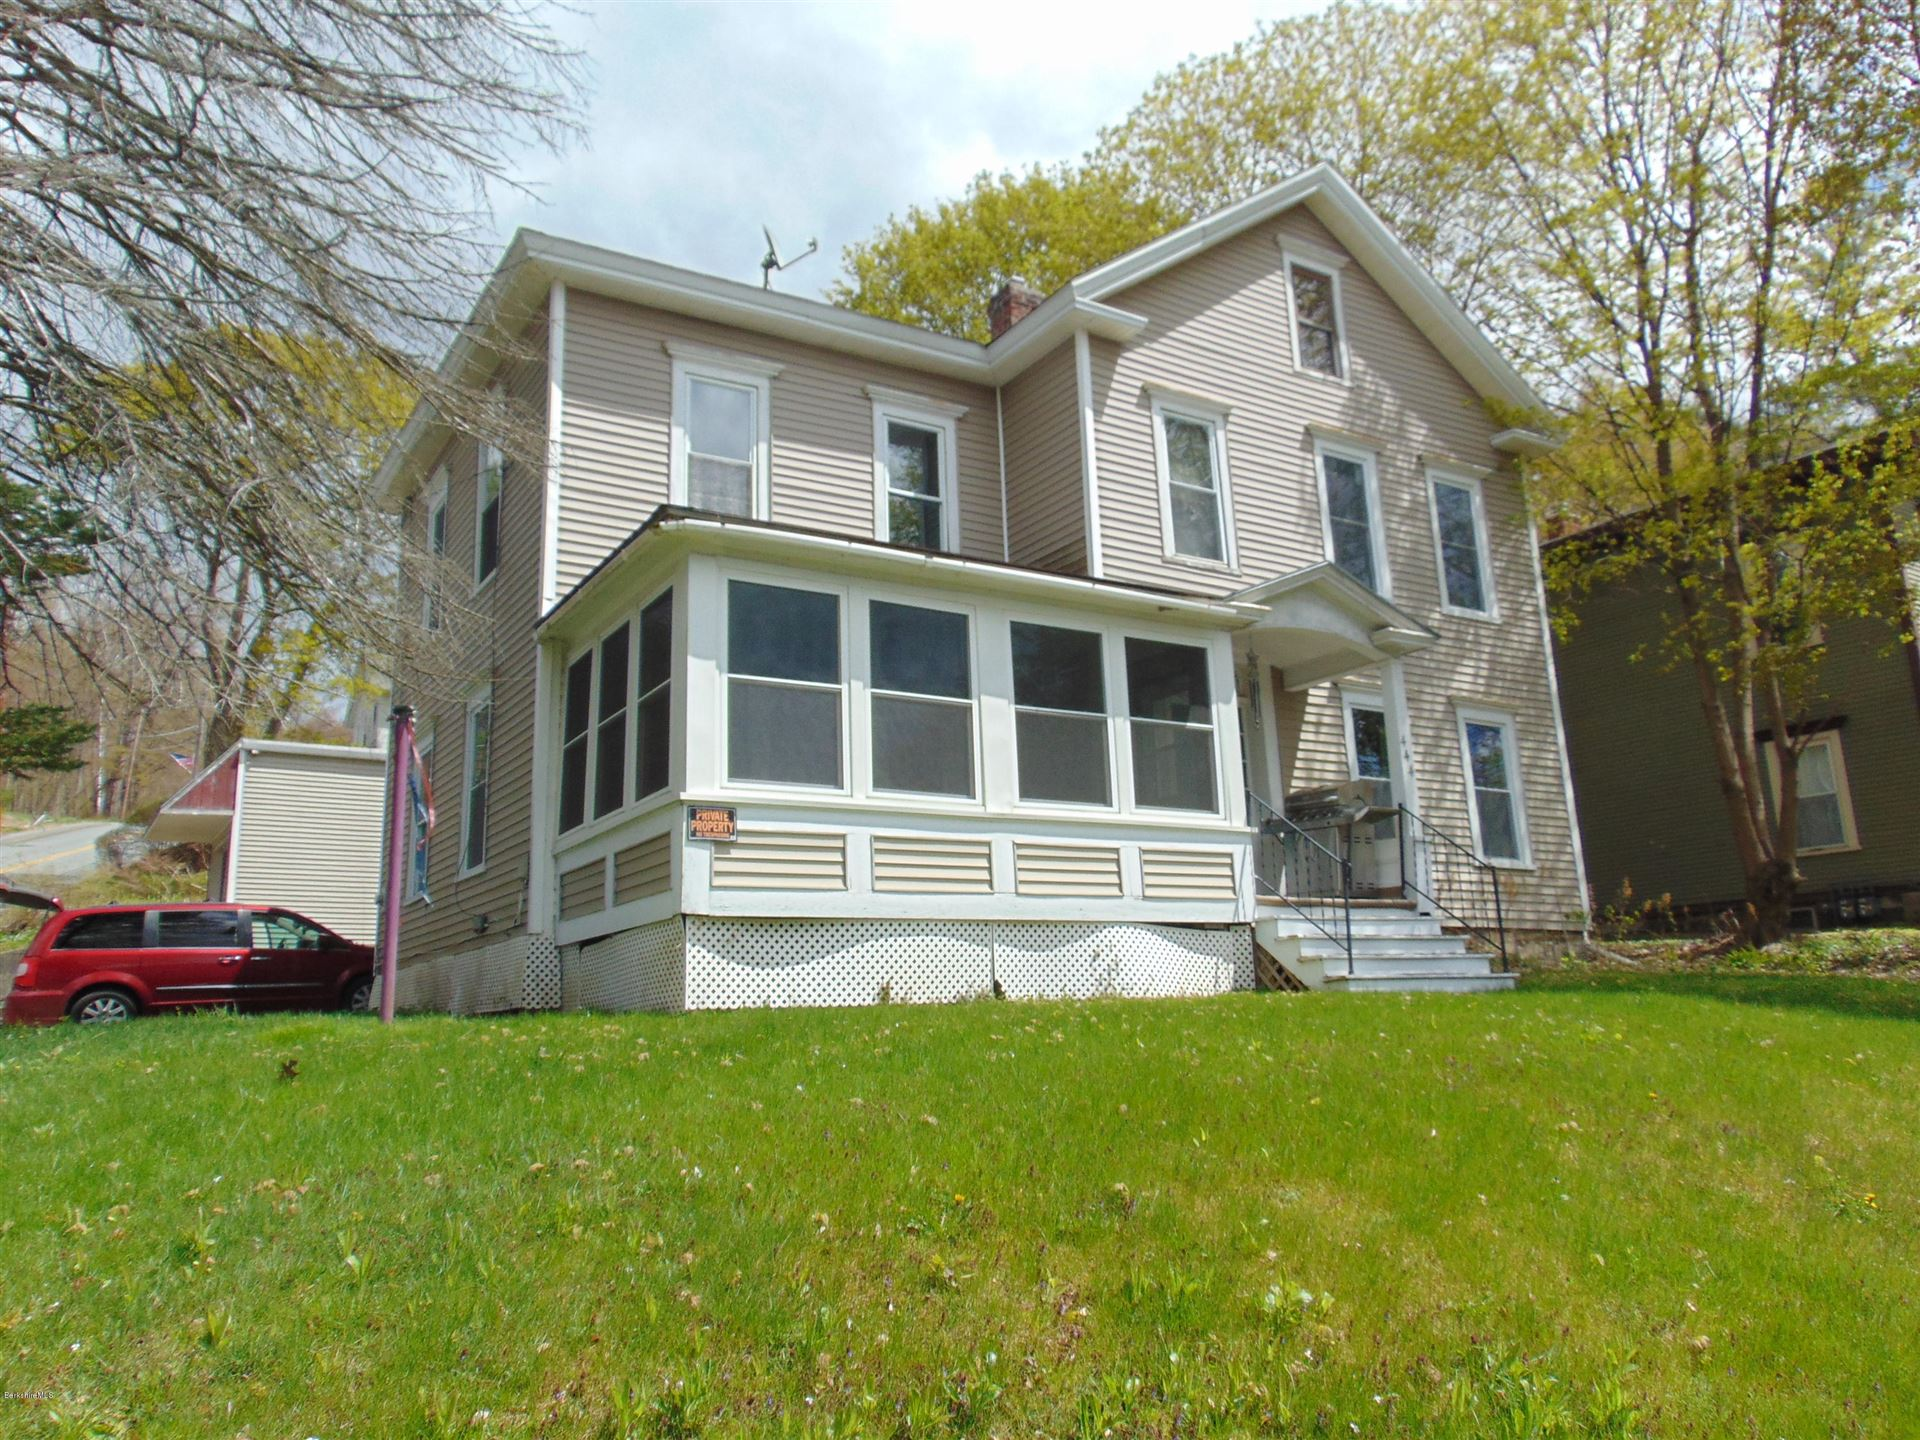 444 Church St, North Adams, MA 01247 - #: 229731